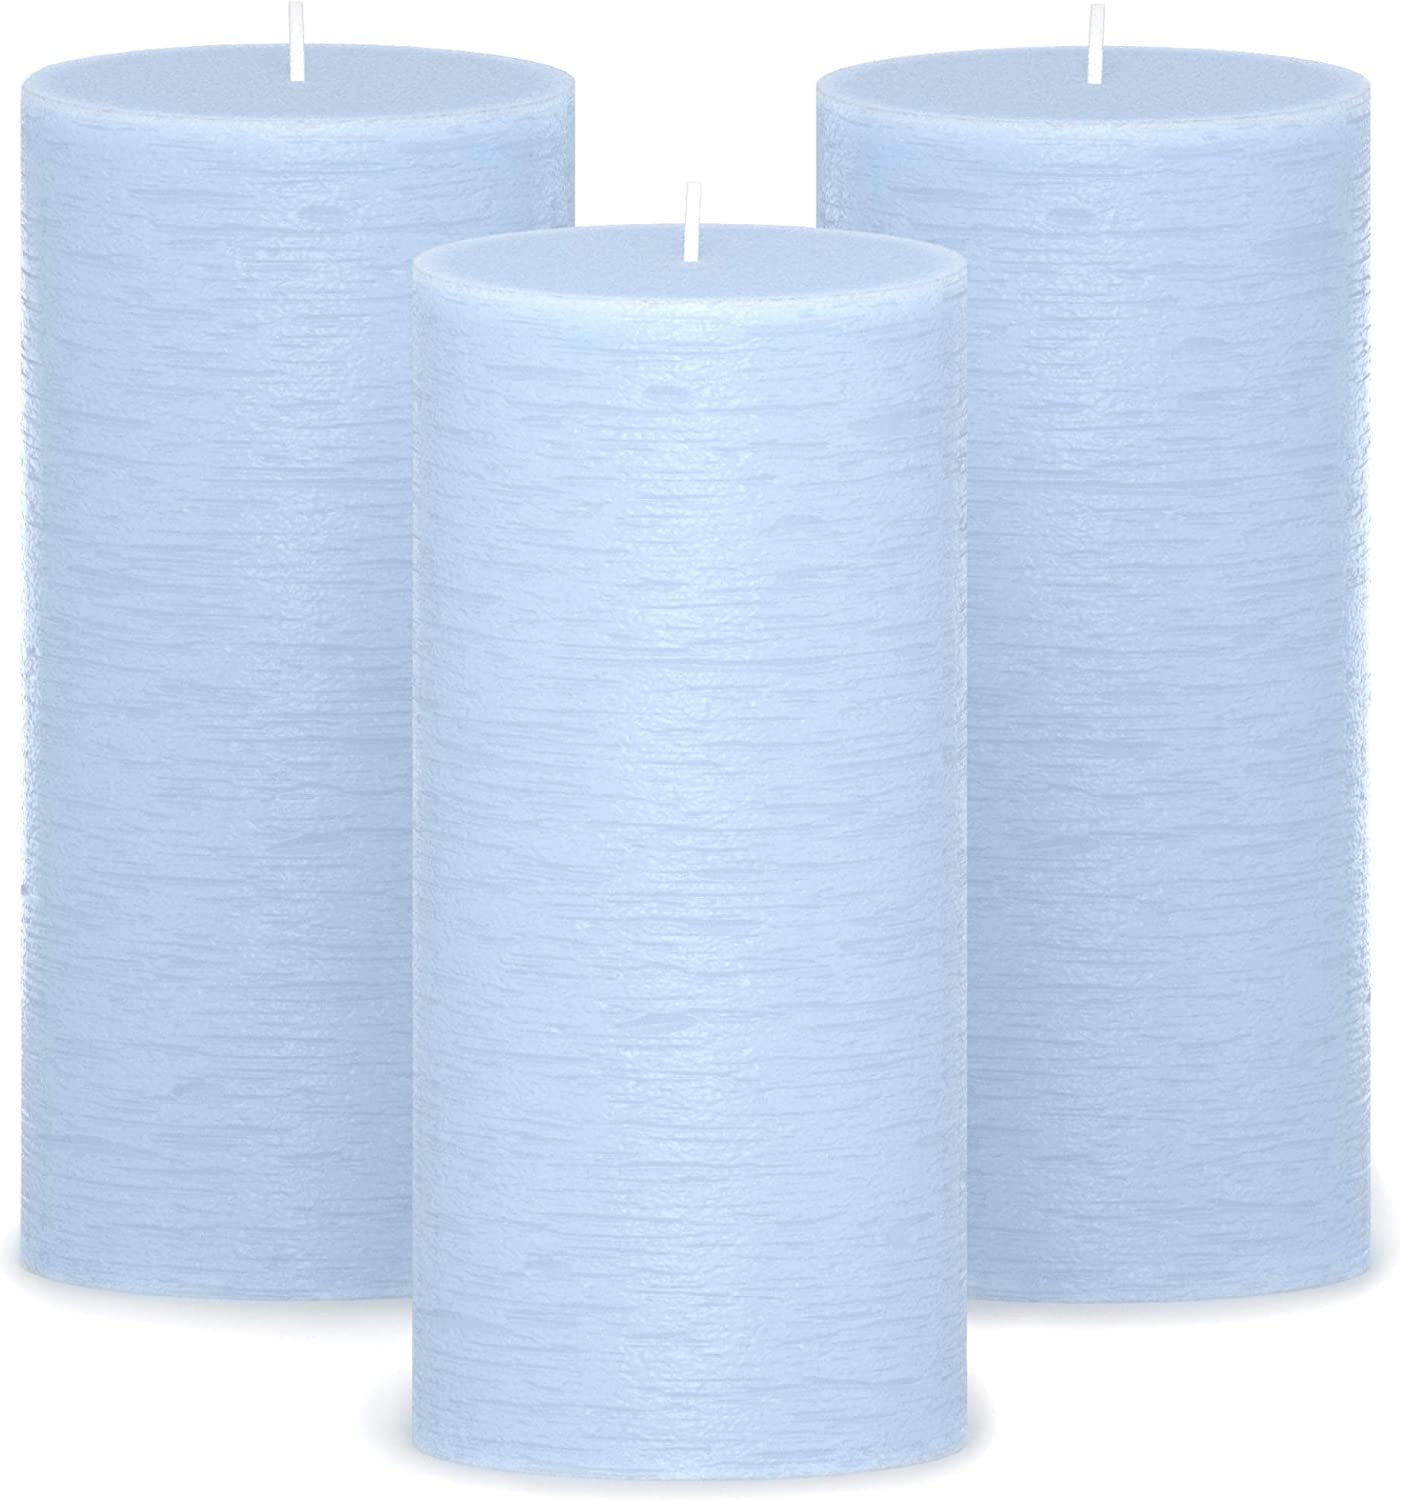 CANDWAX 3x6 Pillar Candles Set of 3 - Decorative Candles Unscented and No Drip Candles - Ideal as Wedding Candles or Large Candles for Home Interior - Light Blue Candles